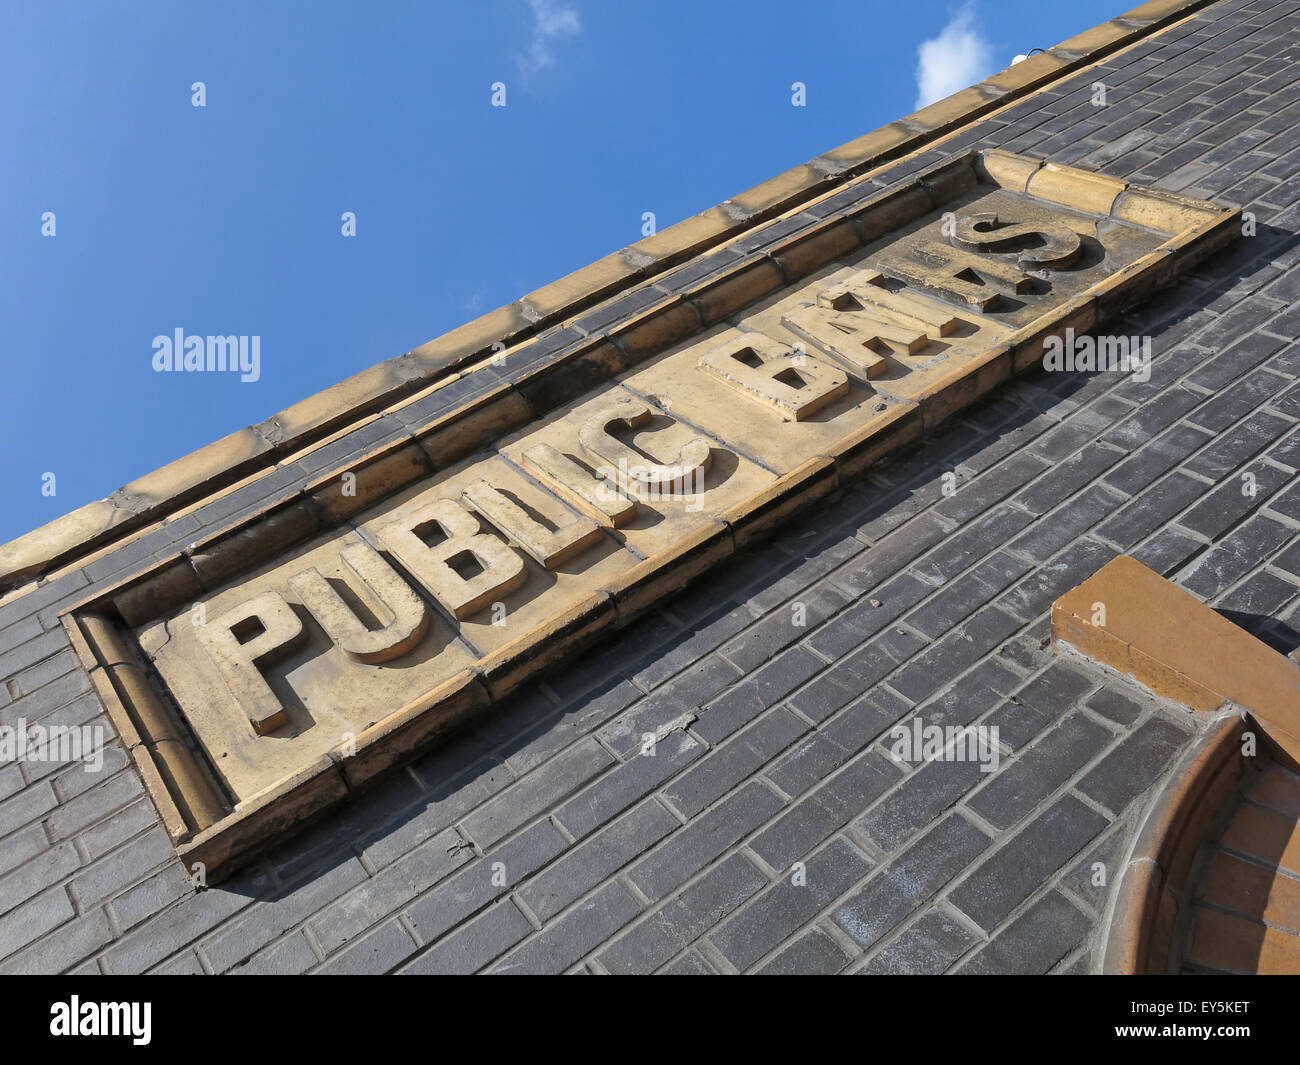 Warrington,Public,Baths,Sign,stone,brick,relic,st,bath,street,blue,sky,remainder,of,old,building,historic,Legh,Springfields,medical,centre,Warringtonians,Springfields Medical Centre,GoTonySmith,Buy Pictures of,Buy Images Of